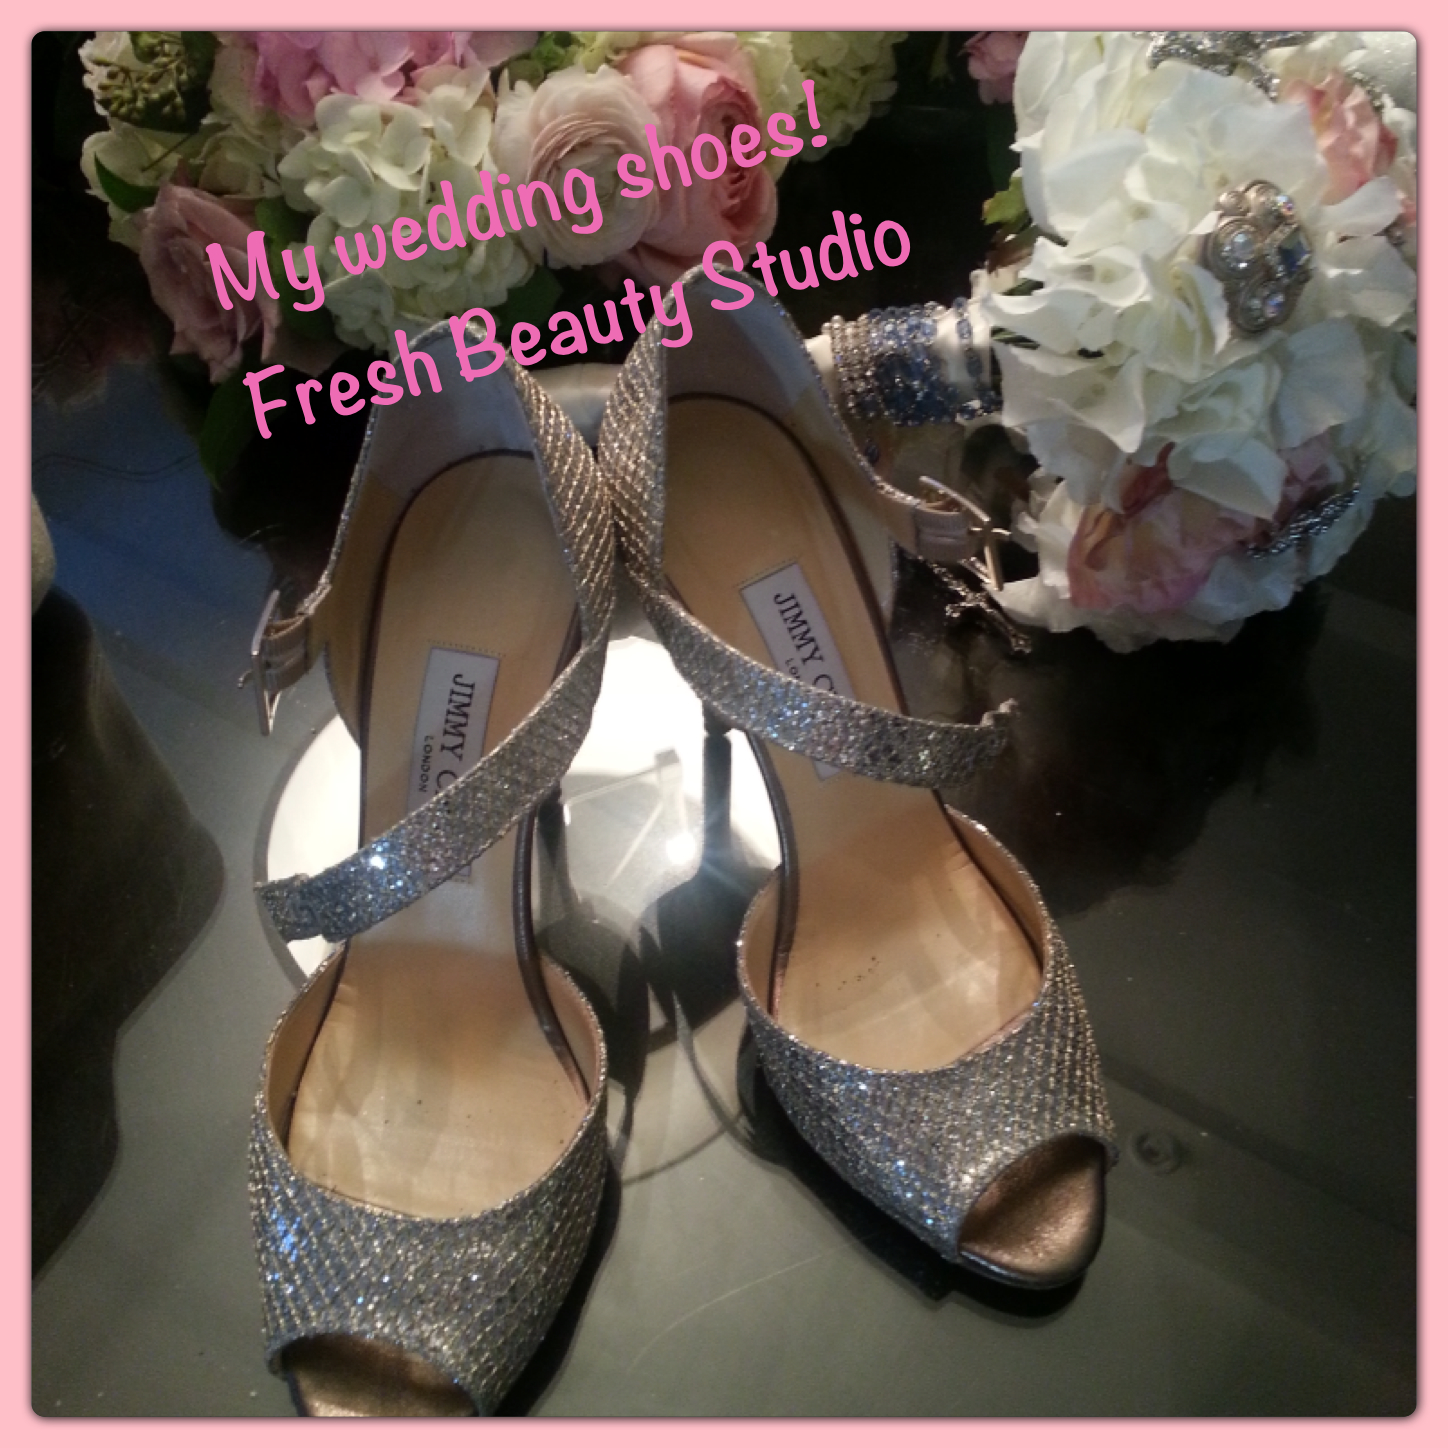 dffc081df30 The Most Comfortable Wedding Shoes! By Beauty Expert Nikol Johnson